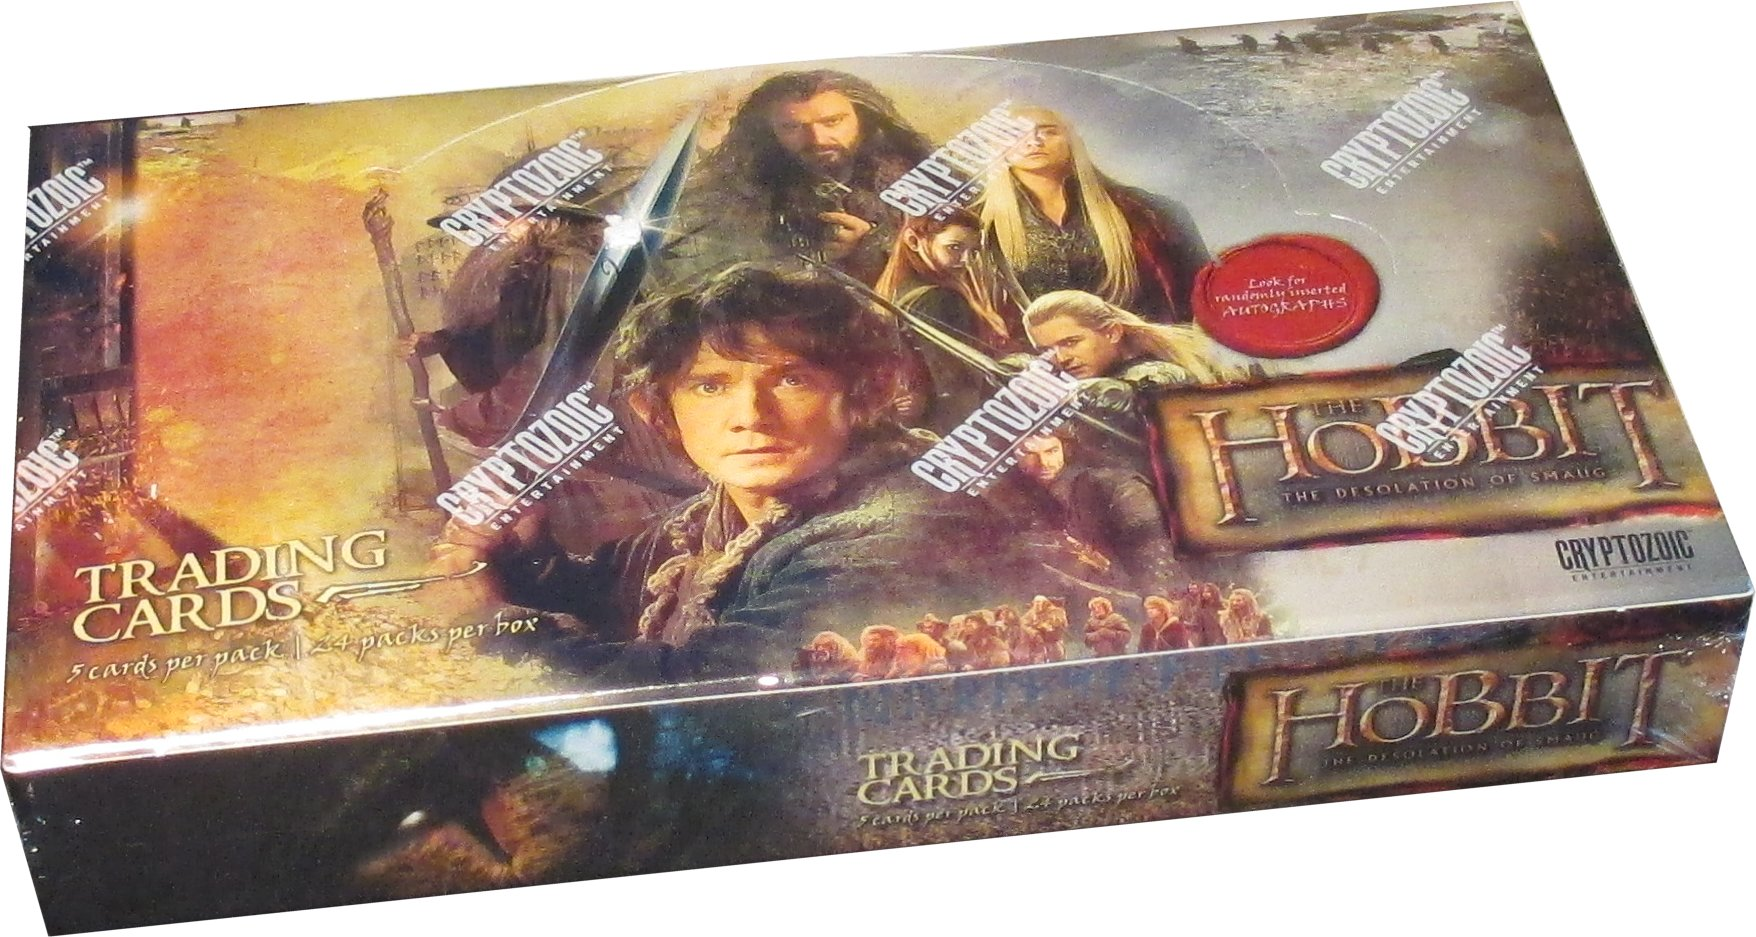 The Hobbit The Desolation Of Smaug      Individual Trading Cards